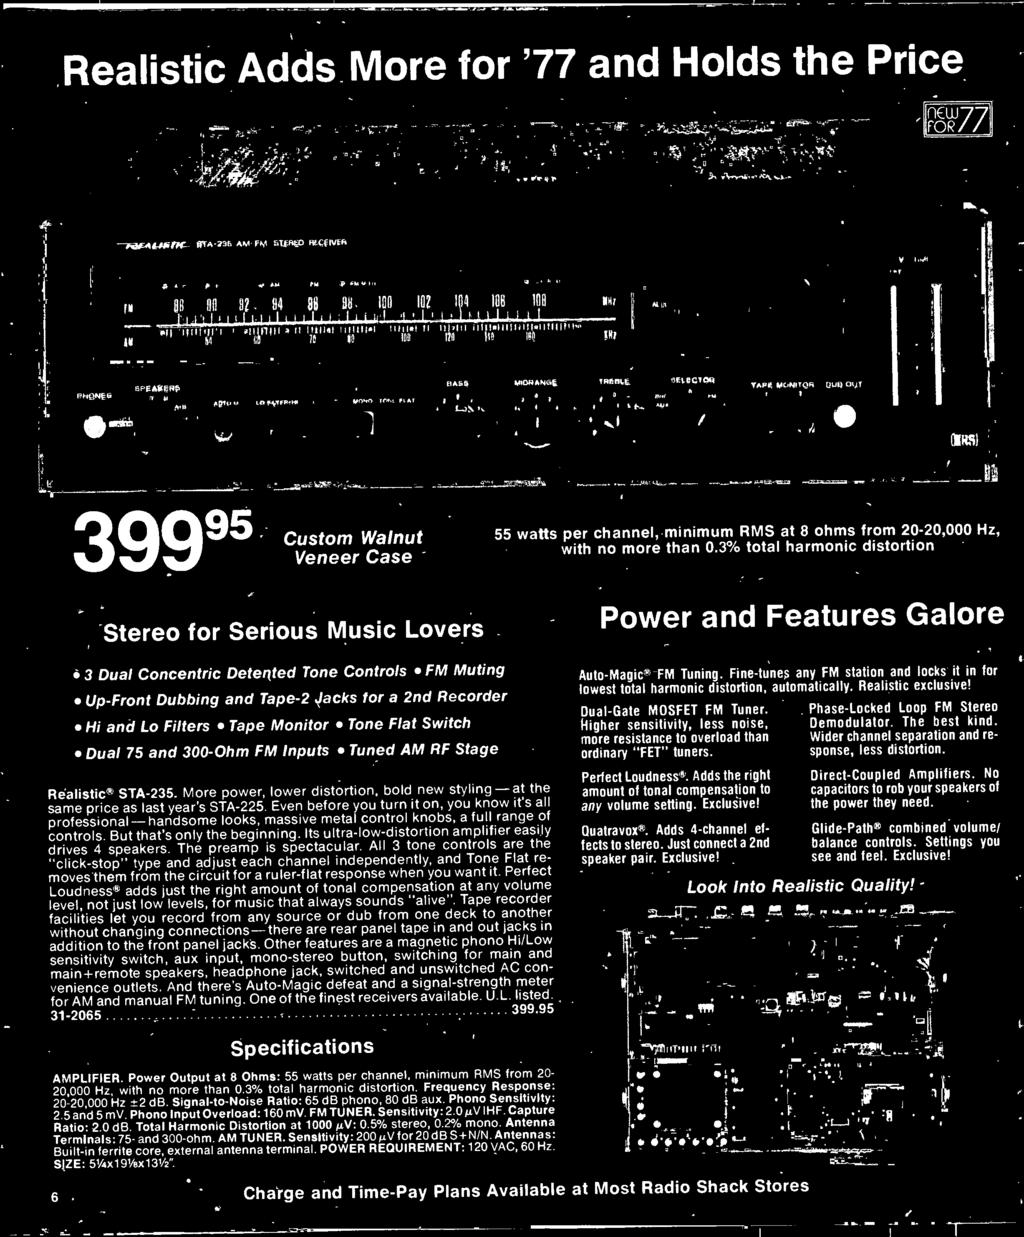 1977 Electronics Catalog Pdf Transistor Organ By 2n4891 3 Total Harmonic Distortion Stereo For Serious Music Lovers Dual Concentric Detented Tone Controls